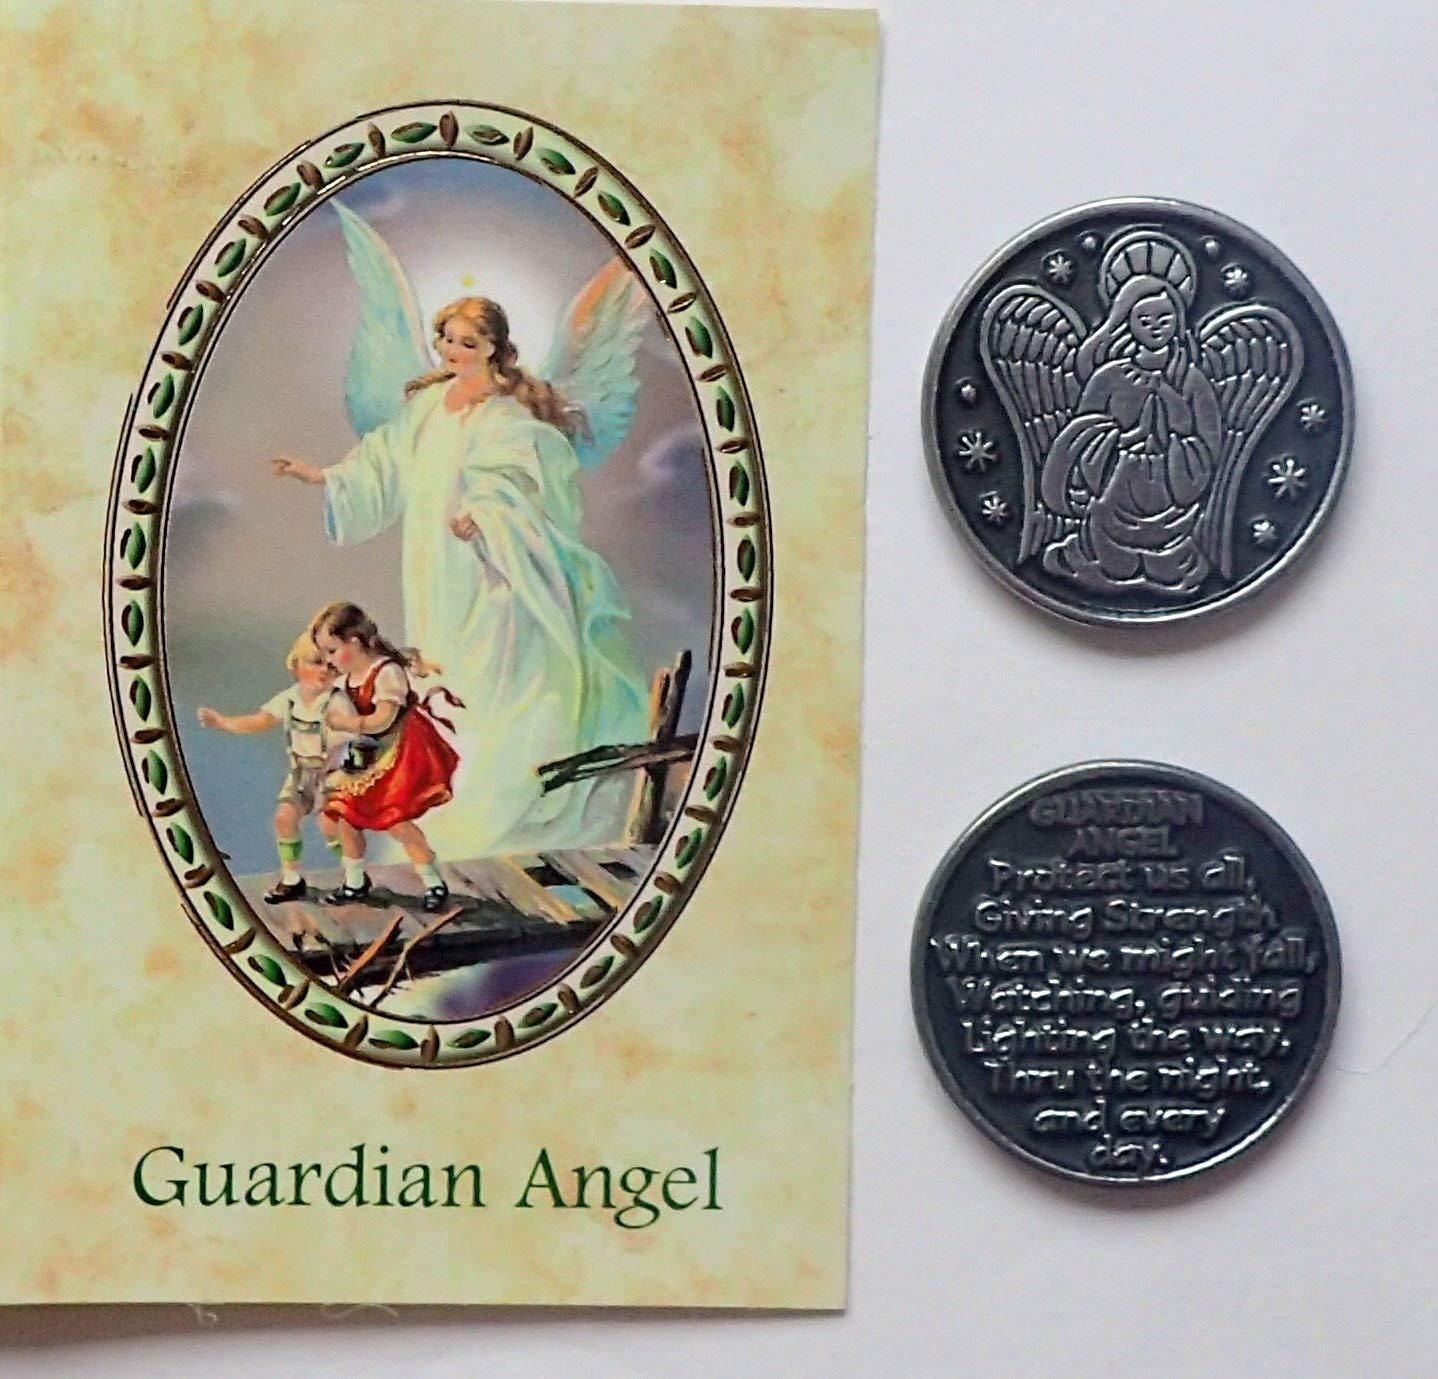 Guardian Angel Pocket Token & Prayer Verse Card CBC